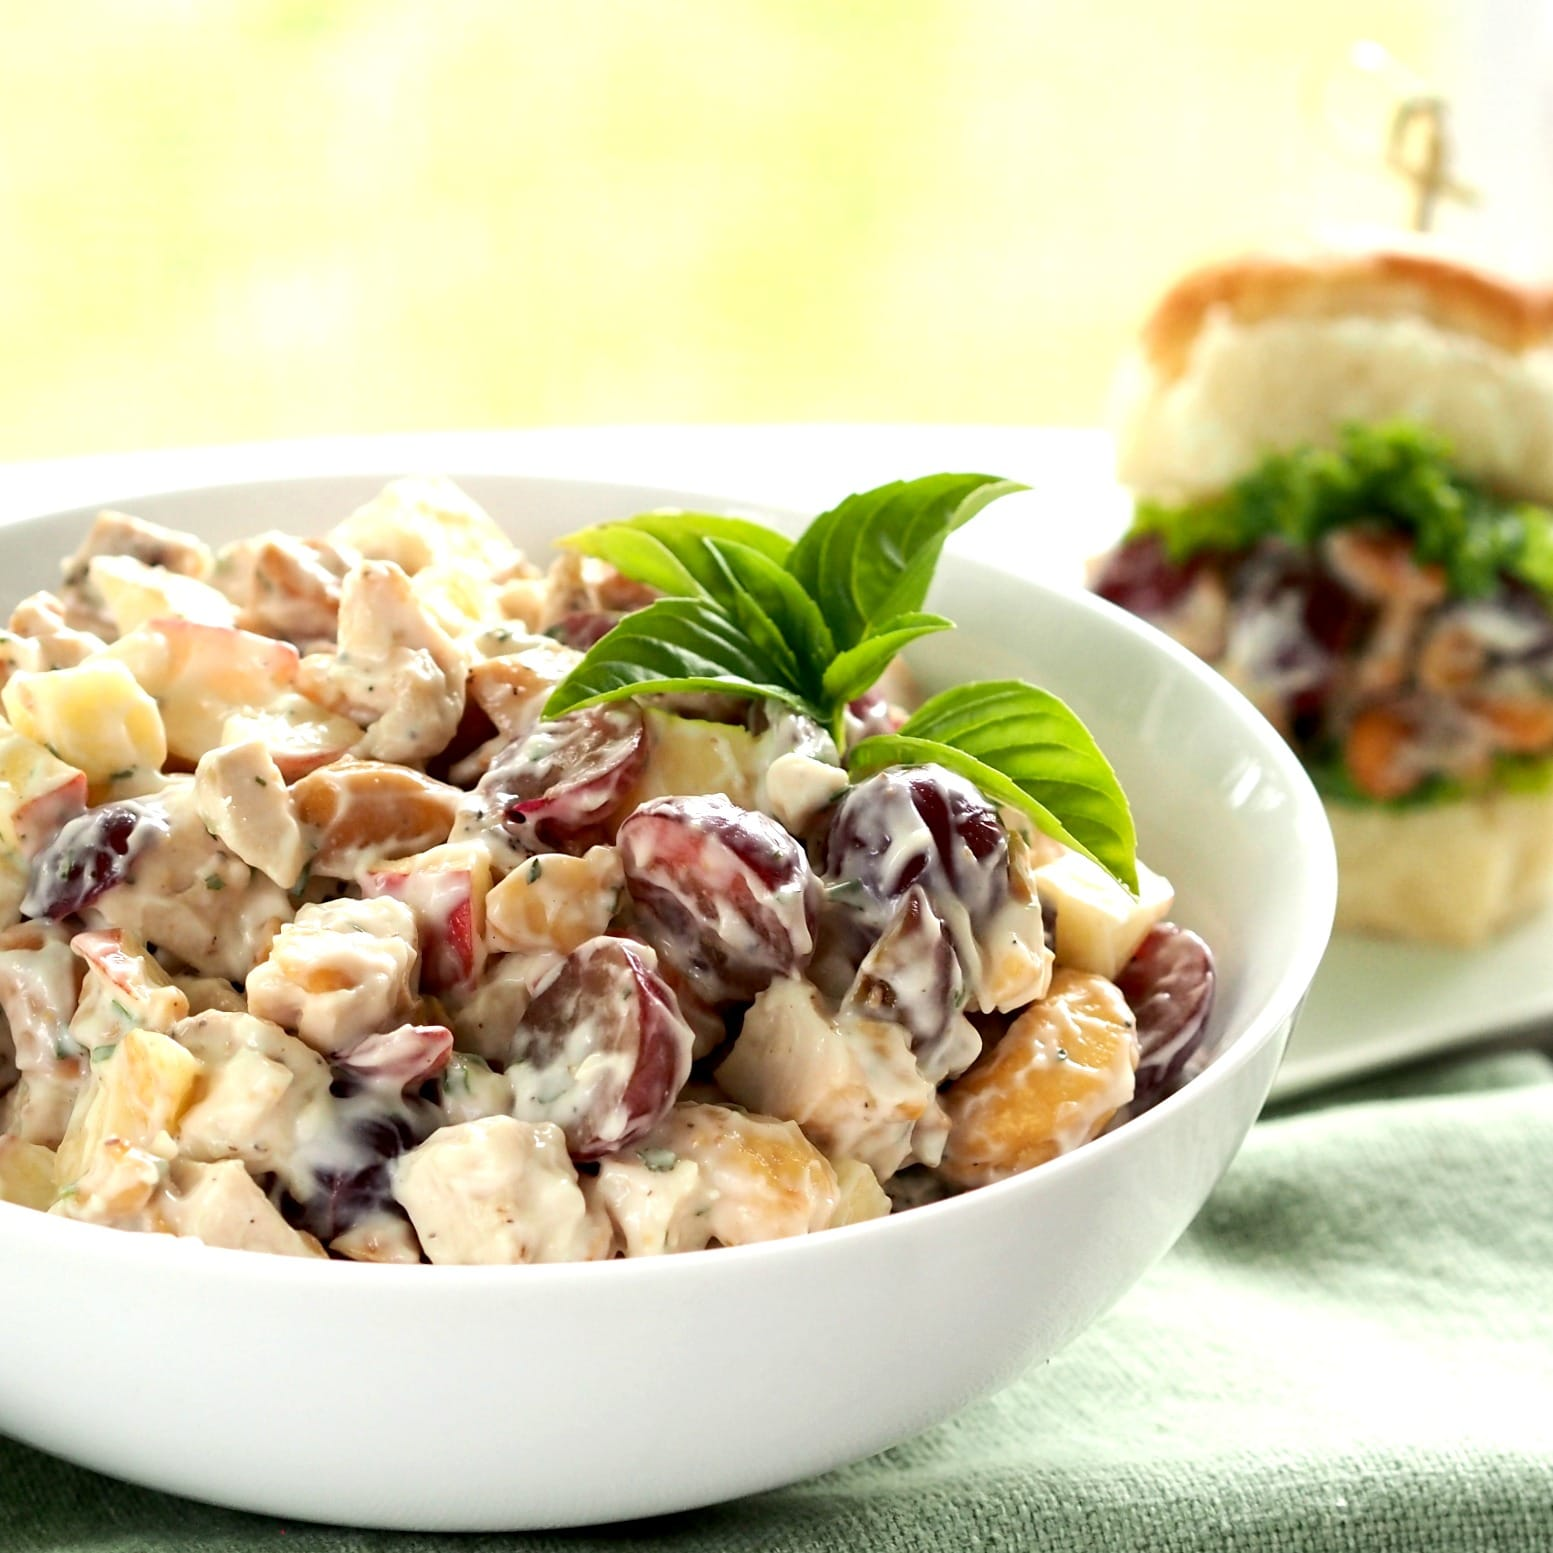 Grilled Black Pepper Chicken Salad is full of flavor, texture and tastes. Perfect served as a sandwich, salad or dip. www.simplysated.com